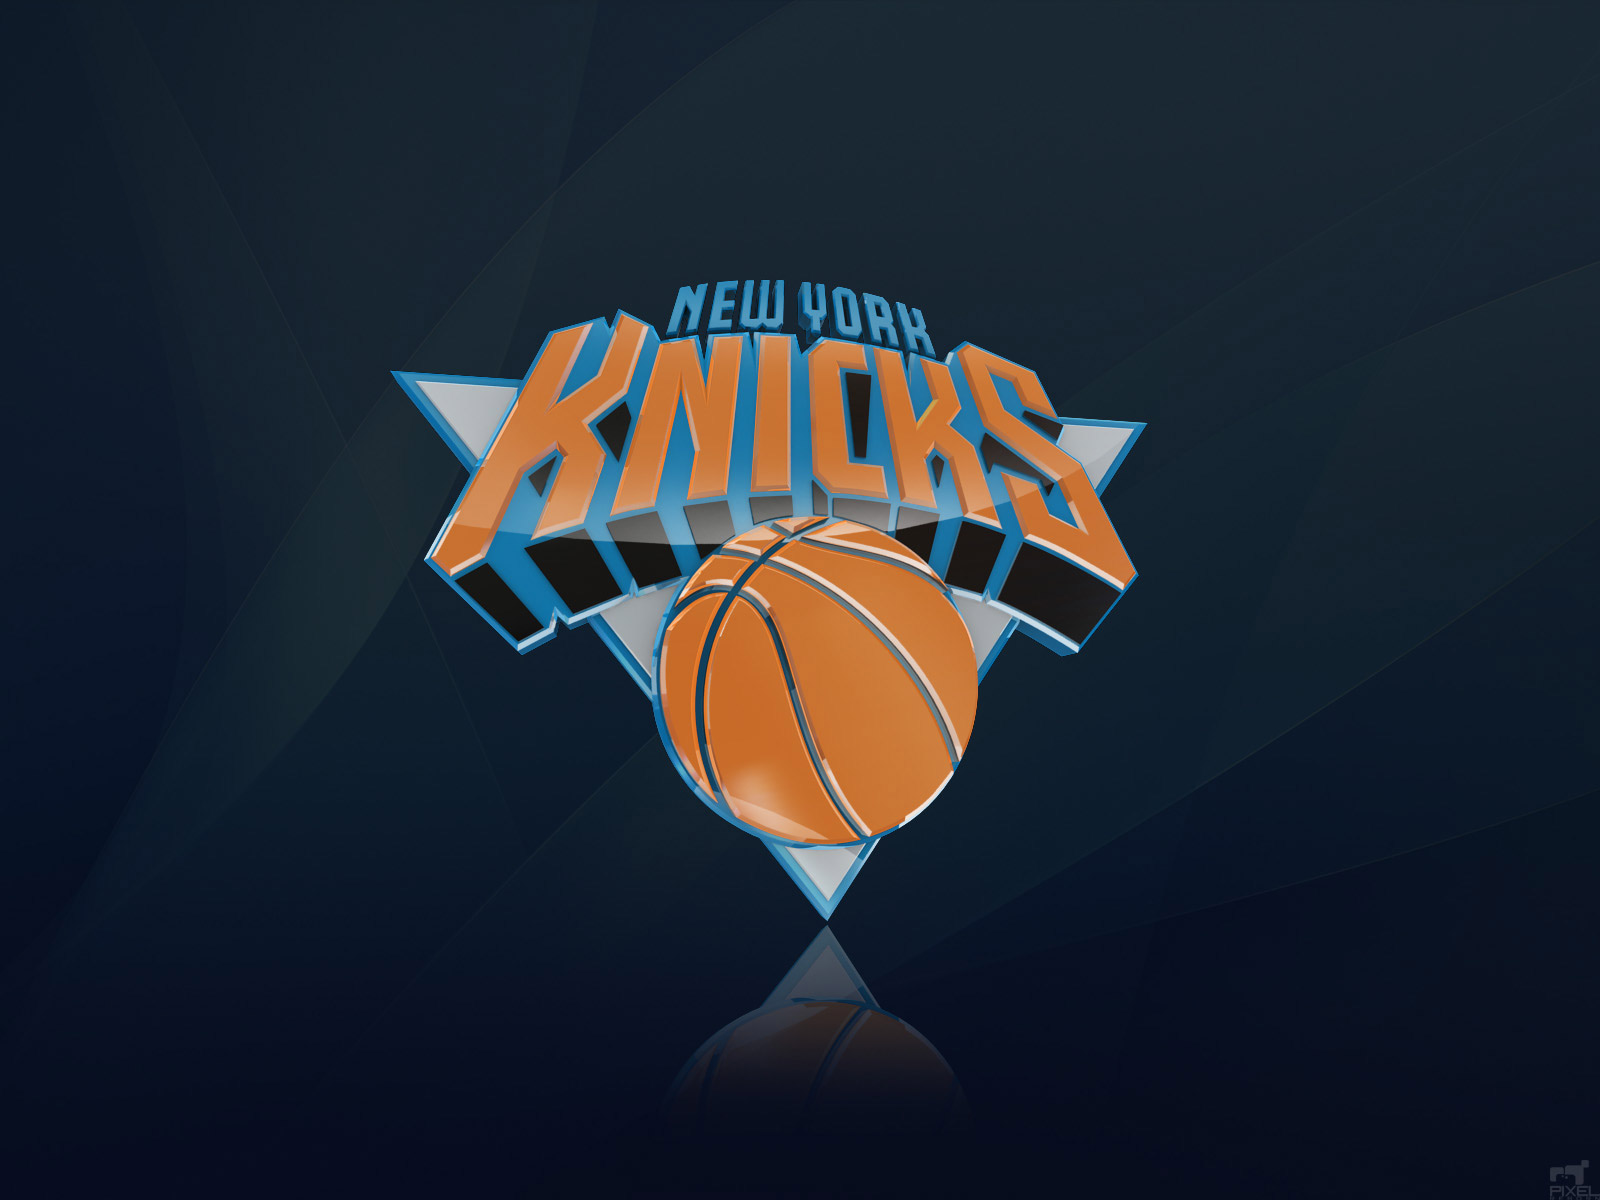 1600x1200 - New York Knicks Wallpapers 14